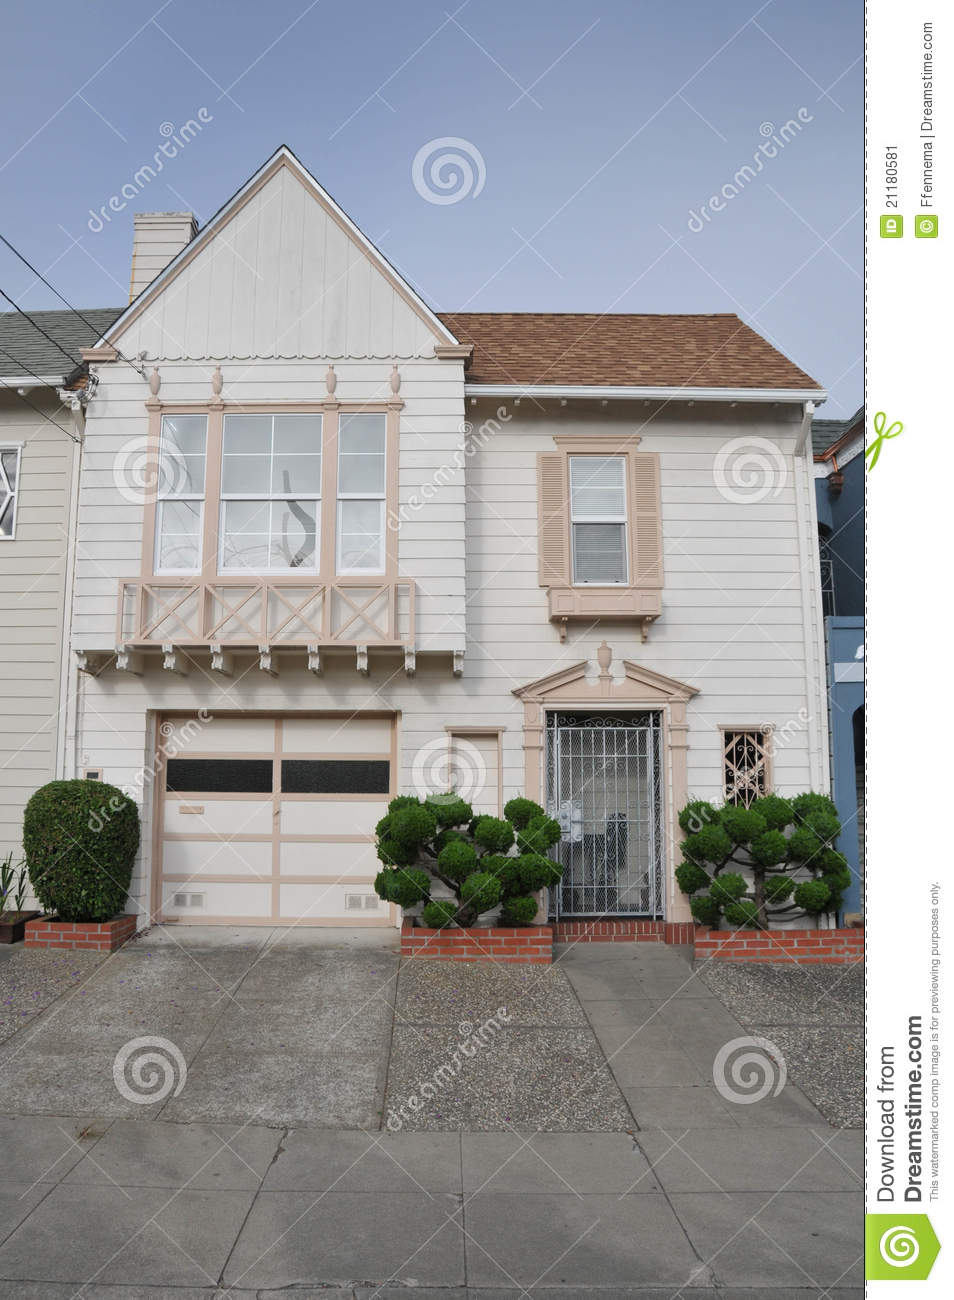 Single family house two storys with garage